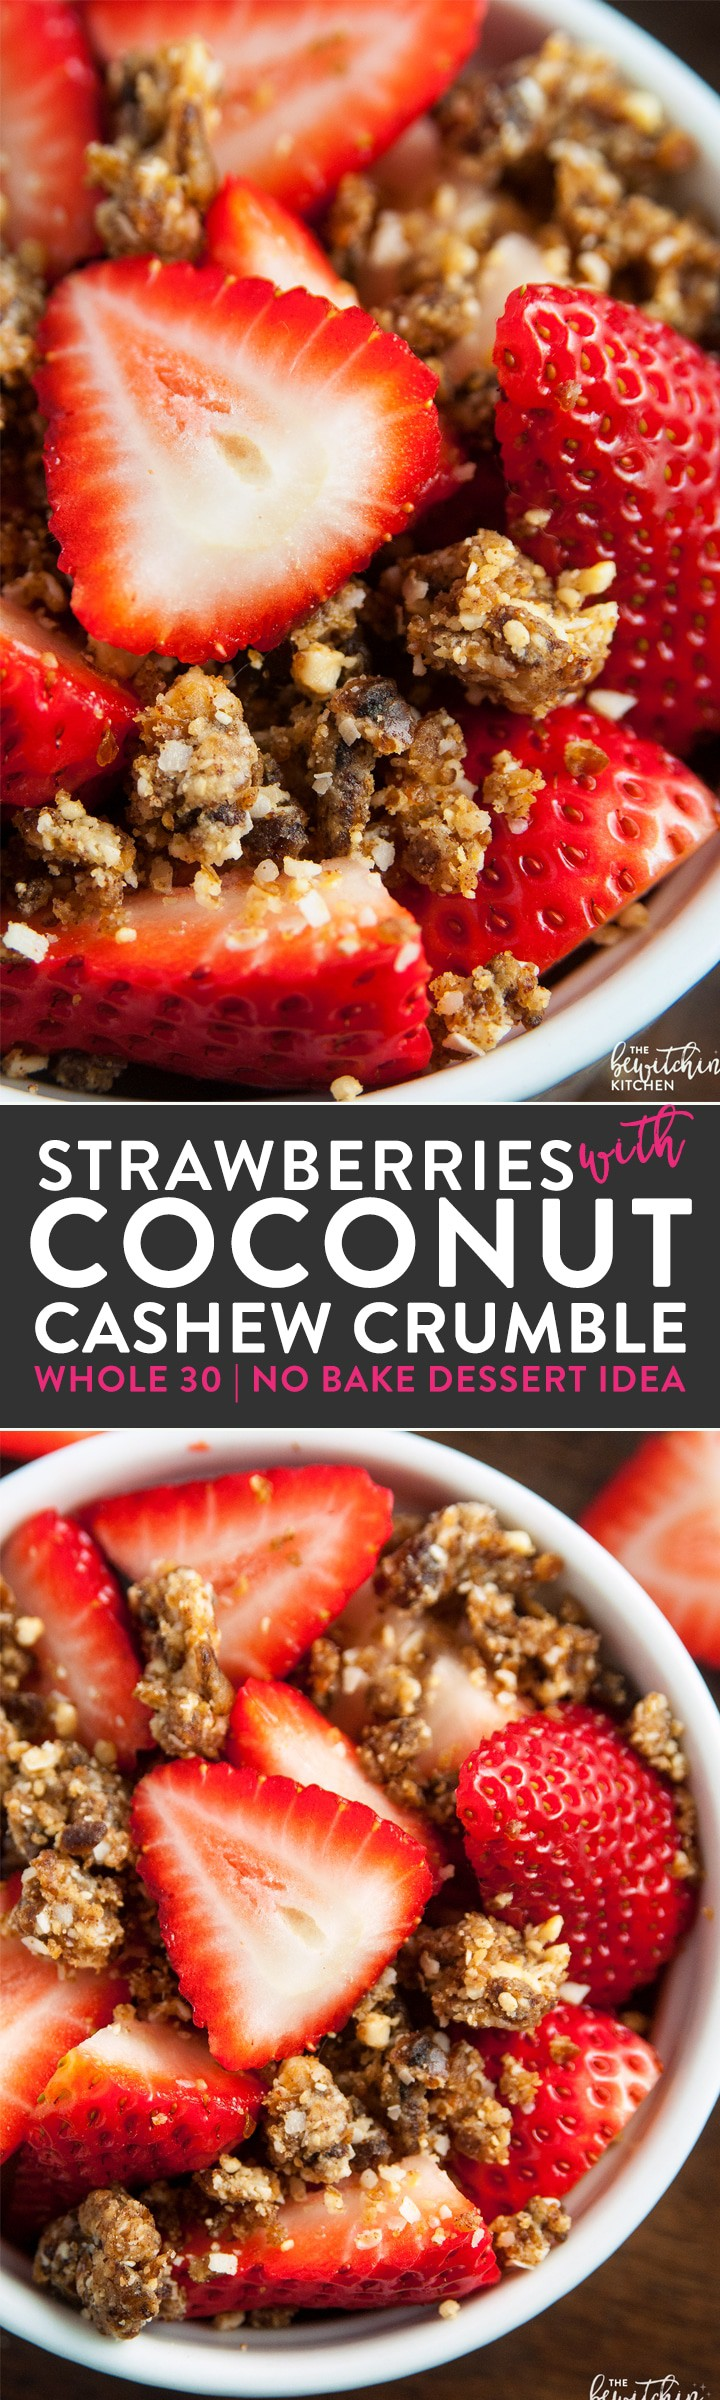 Whole30 dessert idea! Strawberries with coconut cashew crumble - it's so darn yummy. A healthy dessert that's paleo, no bake, and (with only four ingredients) easy to make.